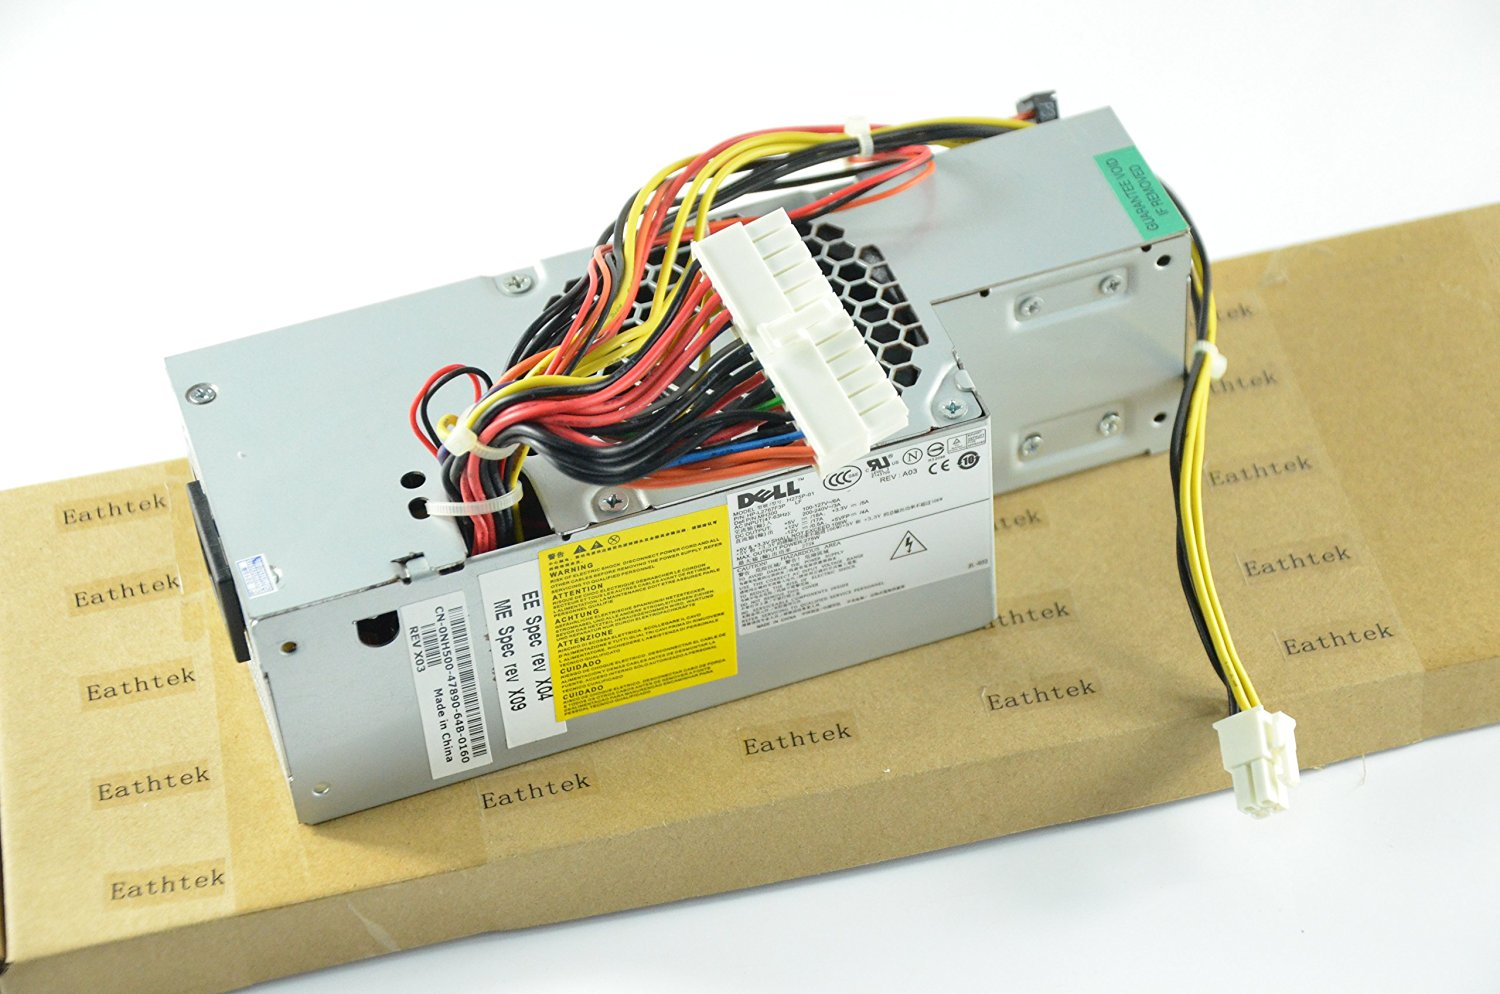 Eathtek Replacement 240W Power Supply for L240AS-00 H240AS-00 AC240AS-00 H240ES-00 D240ES-00 for Dell Optiplex 390 790 960 990 SFF Systems